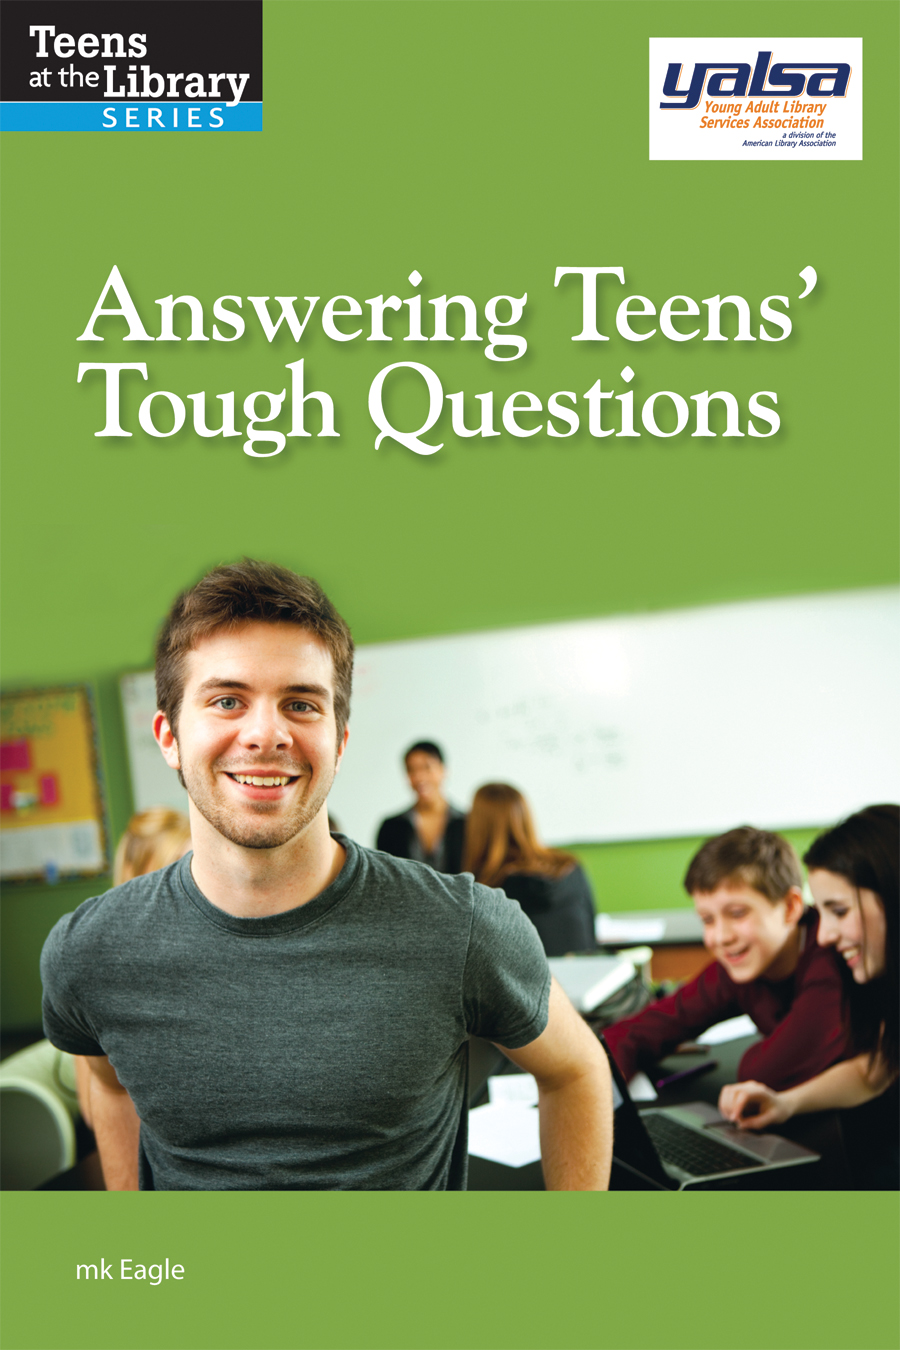 Answering Teens' Tough Questions